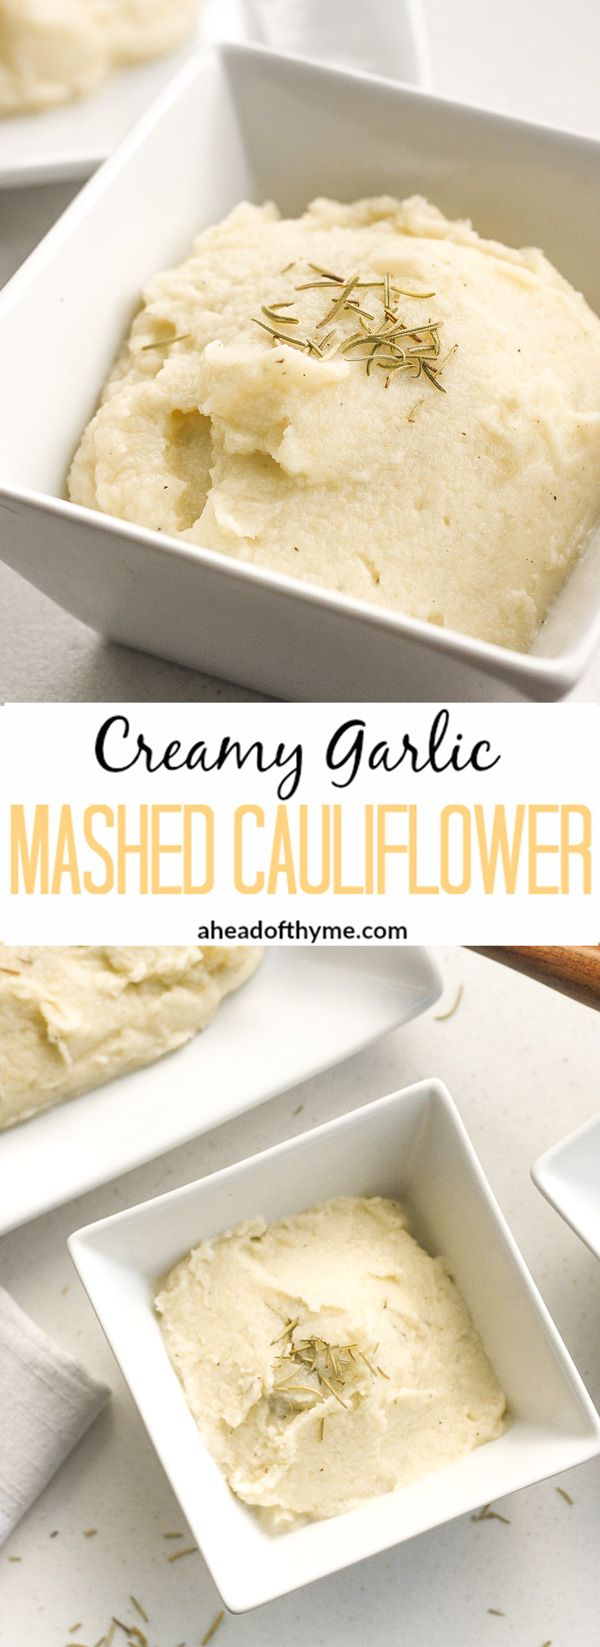 Creamy Garlic Mashed Cauliflower: Imagine having a nice big serving of mashed potatoes but with a quarter of the calories. Now you can with creamy garlic mashed cauliflower!   aheadofthyme.com